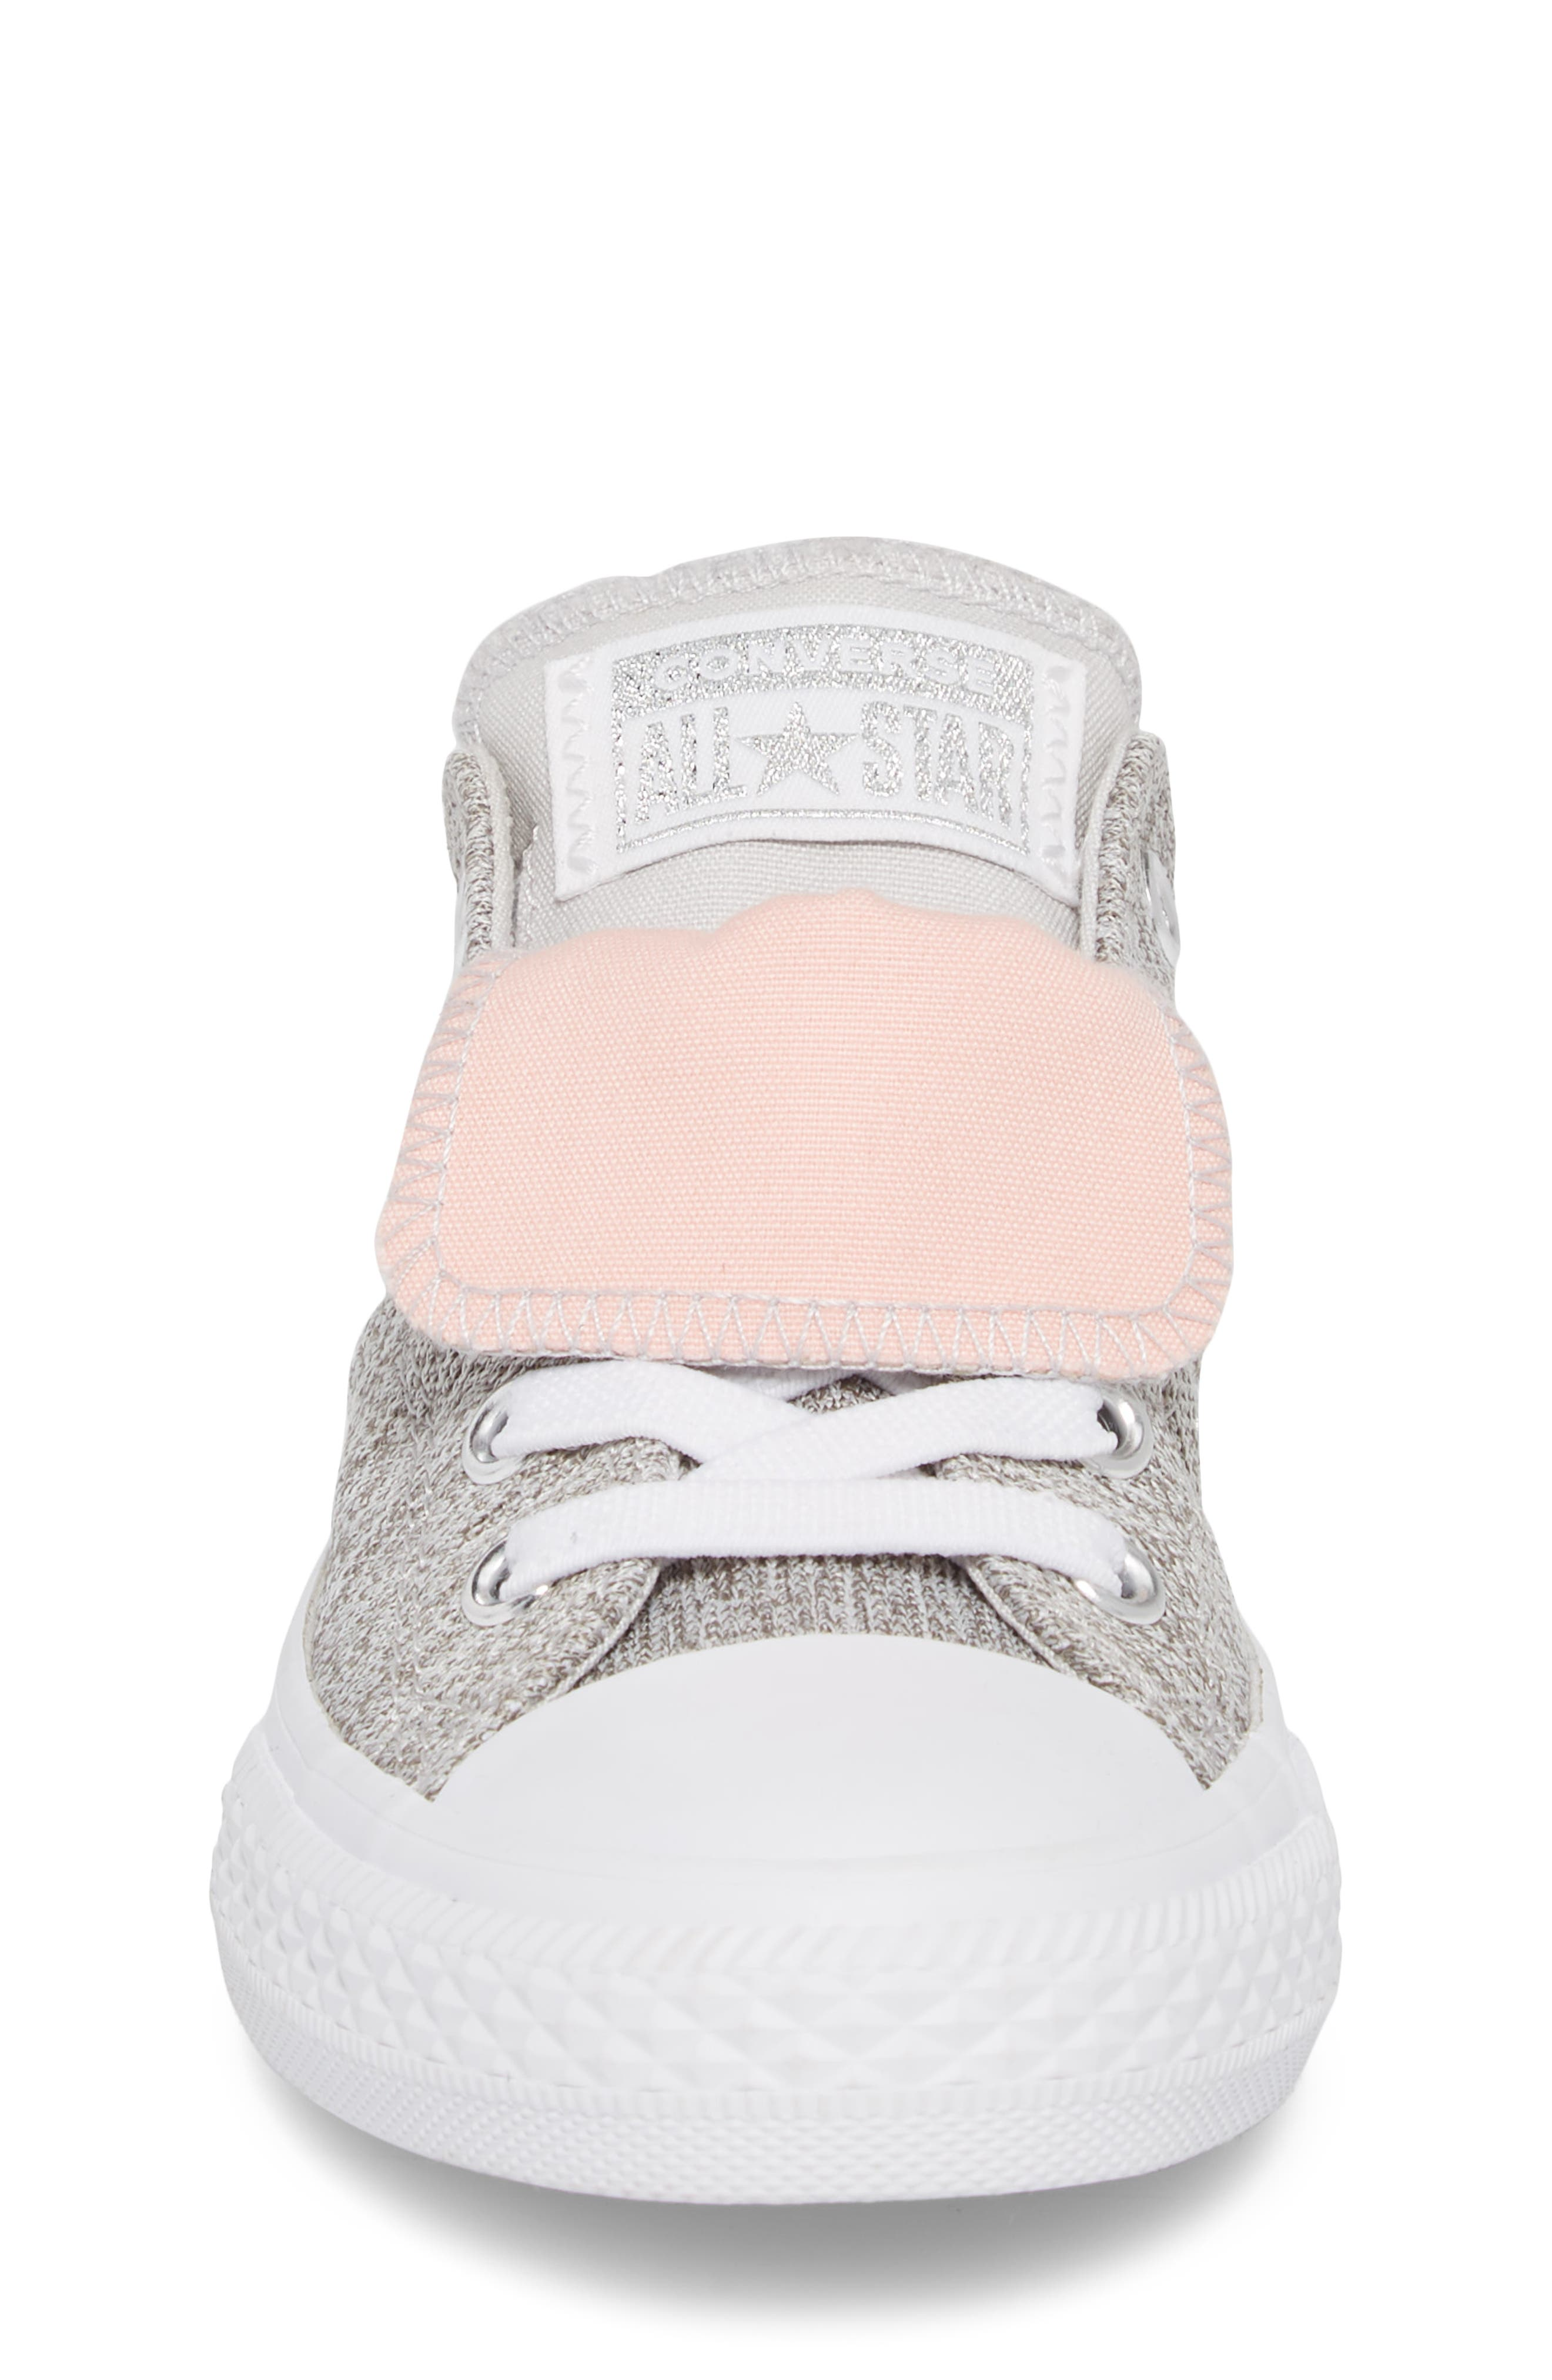 ,                             Chuck Taylor<sup>®</sup> All Star<sup>®</sup> Maddie Double Tongue Sneaker,                             Alternate thumbnail 16, color,                             050